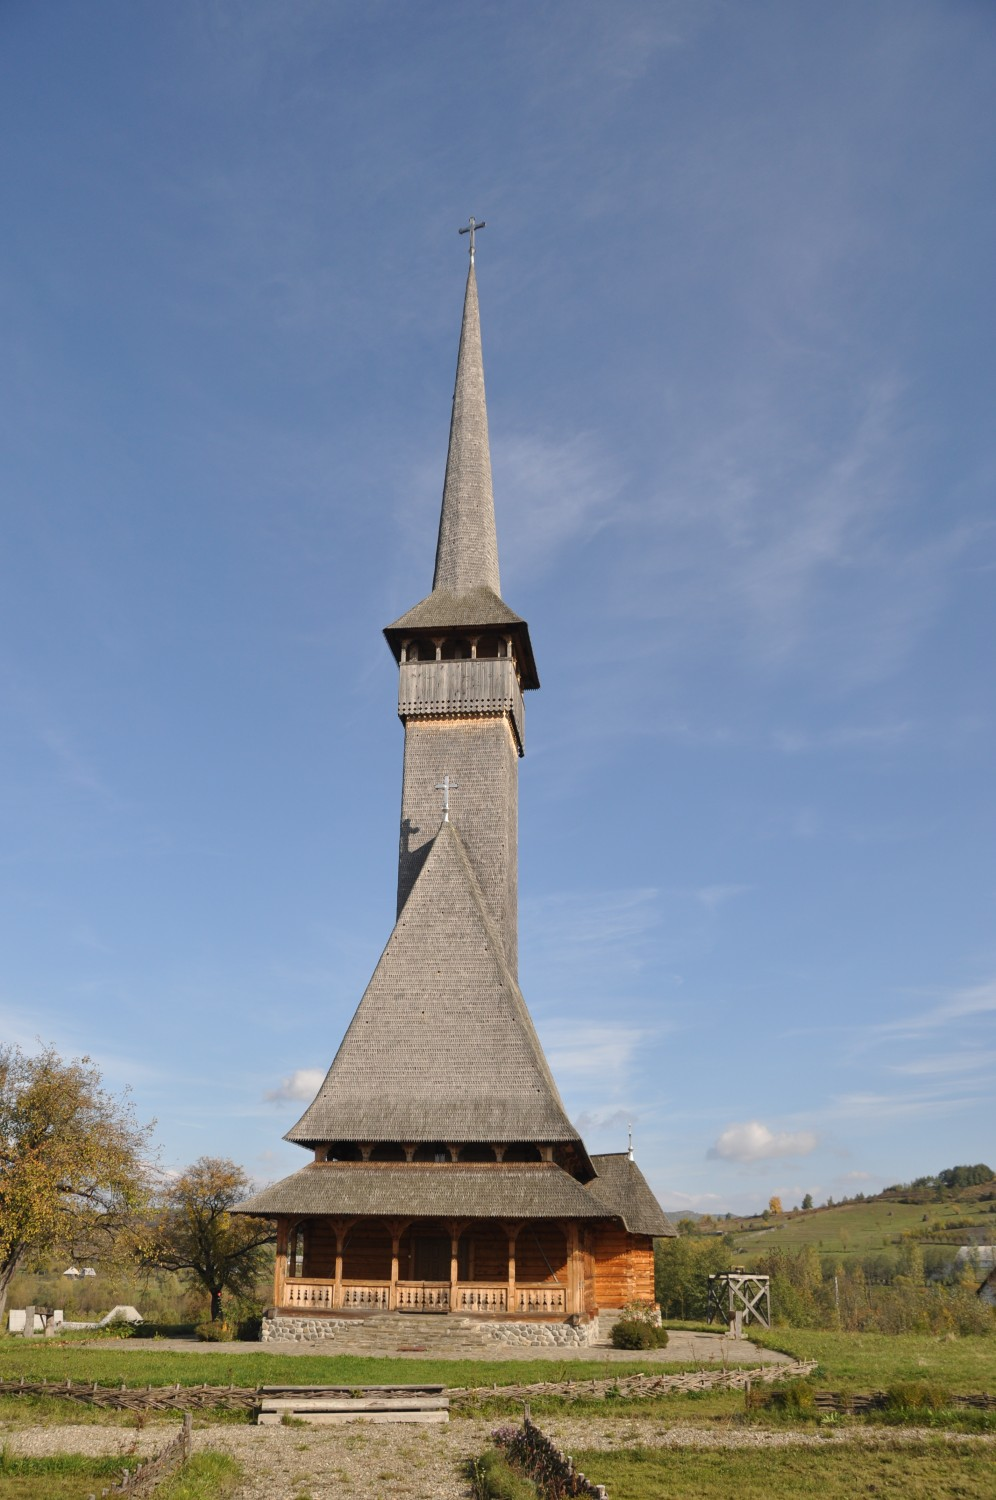 18th century wooden church